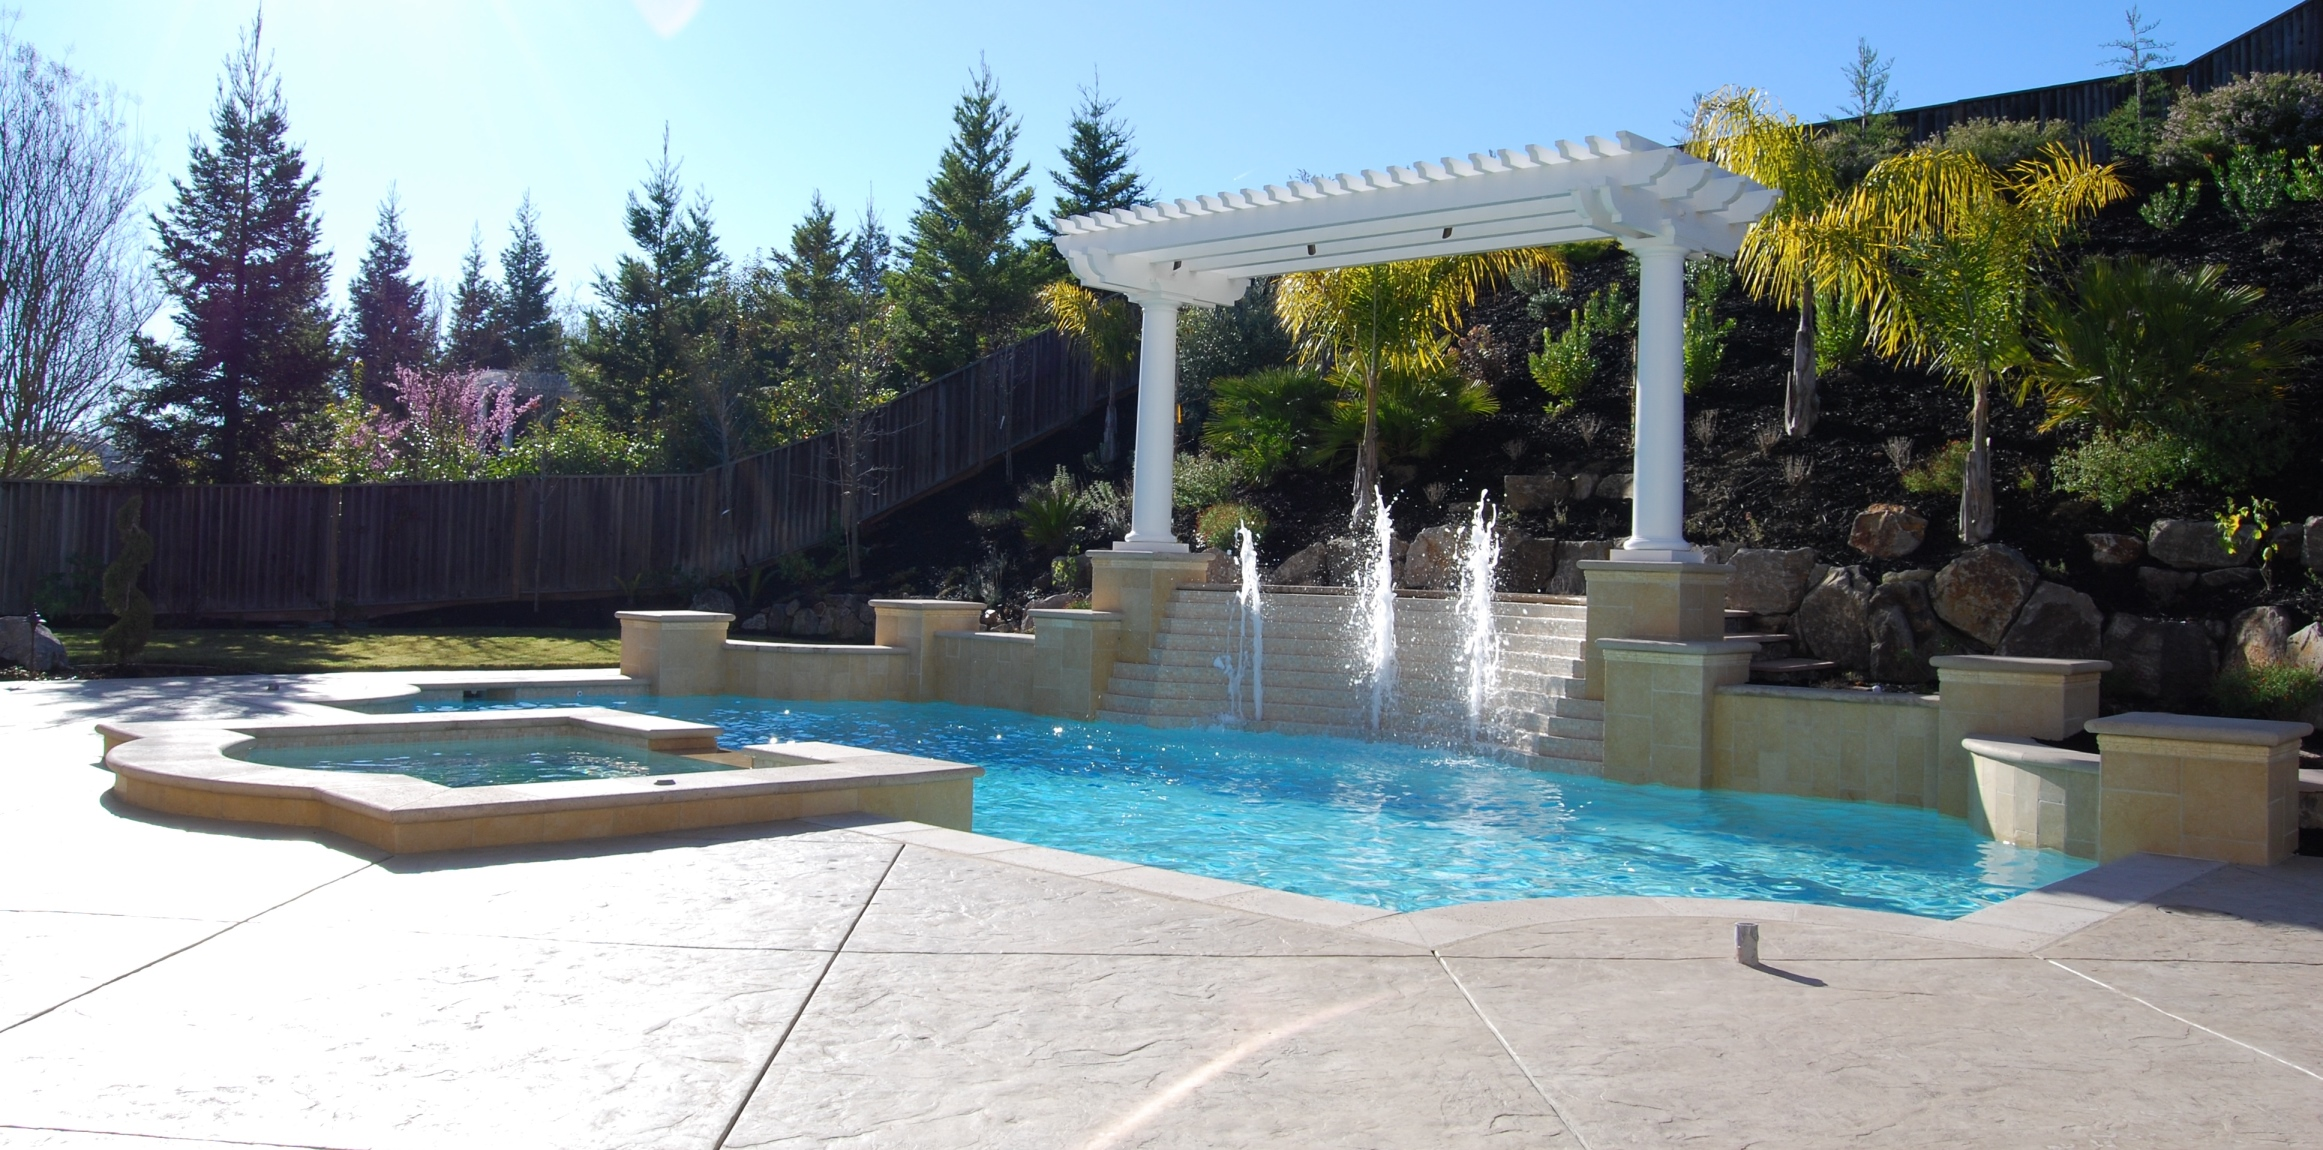 Swimming pool maintenance tips from hawkins pool service - Bobs swimming pool service and repair ...